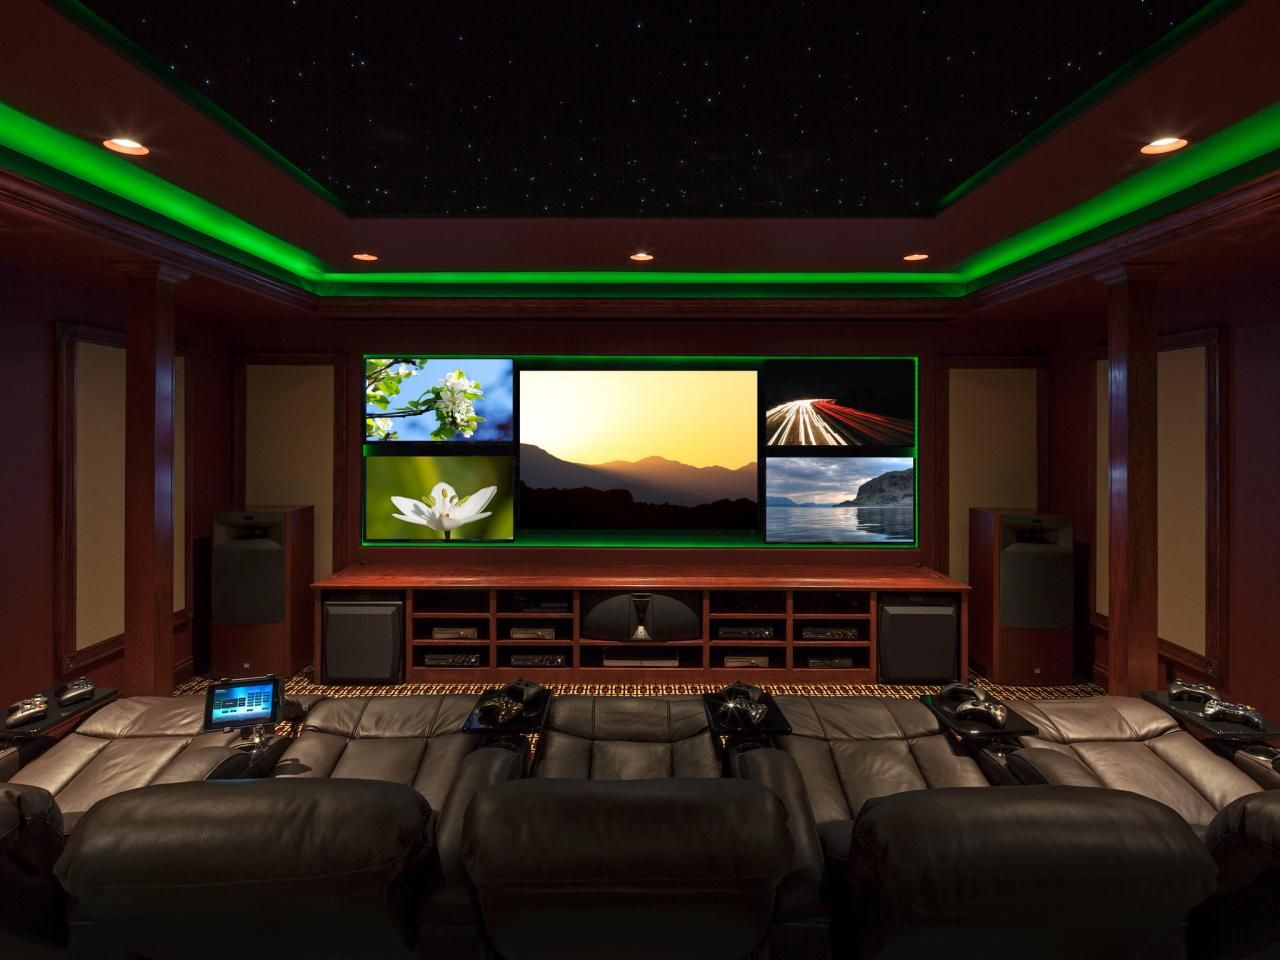 97 best video game rooms images on pinterest | dreams, diy and